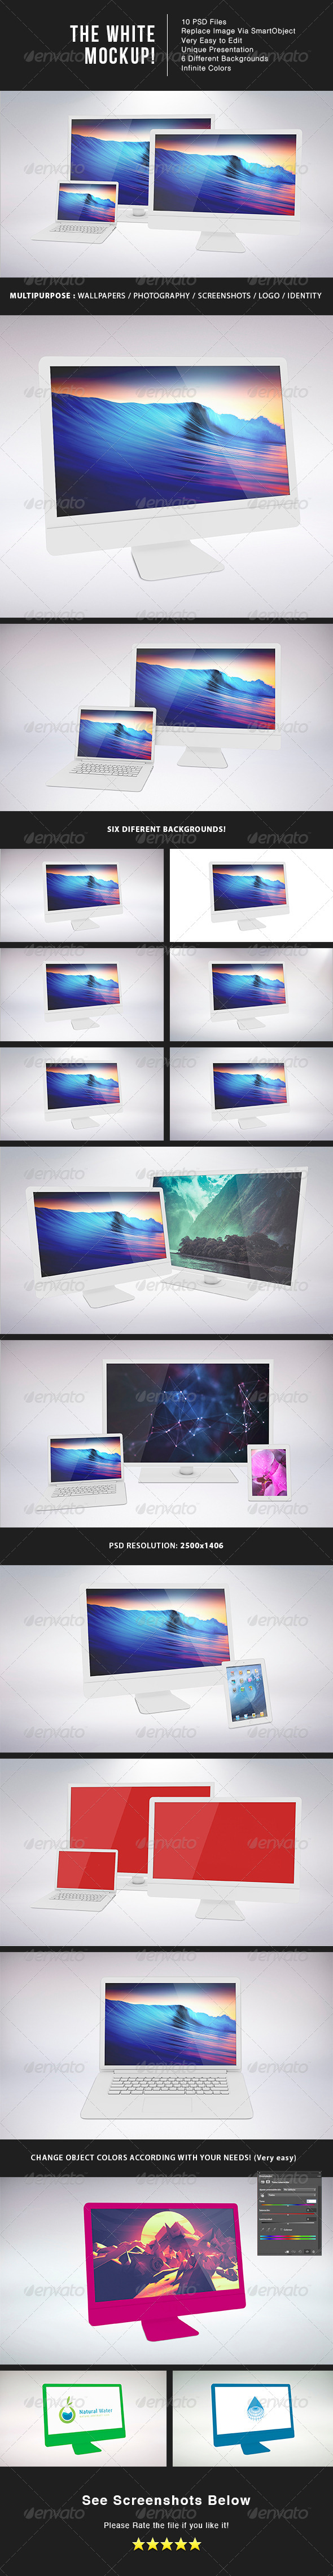 GraphicRiver The White MockUp 6854673